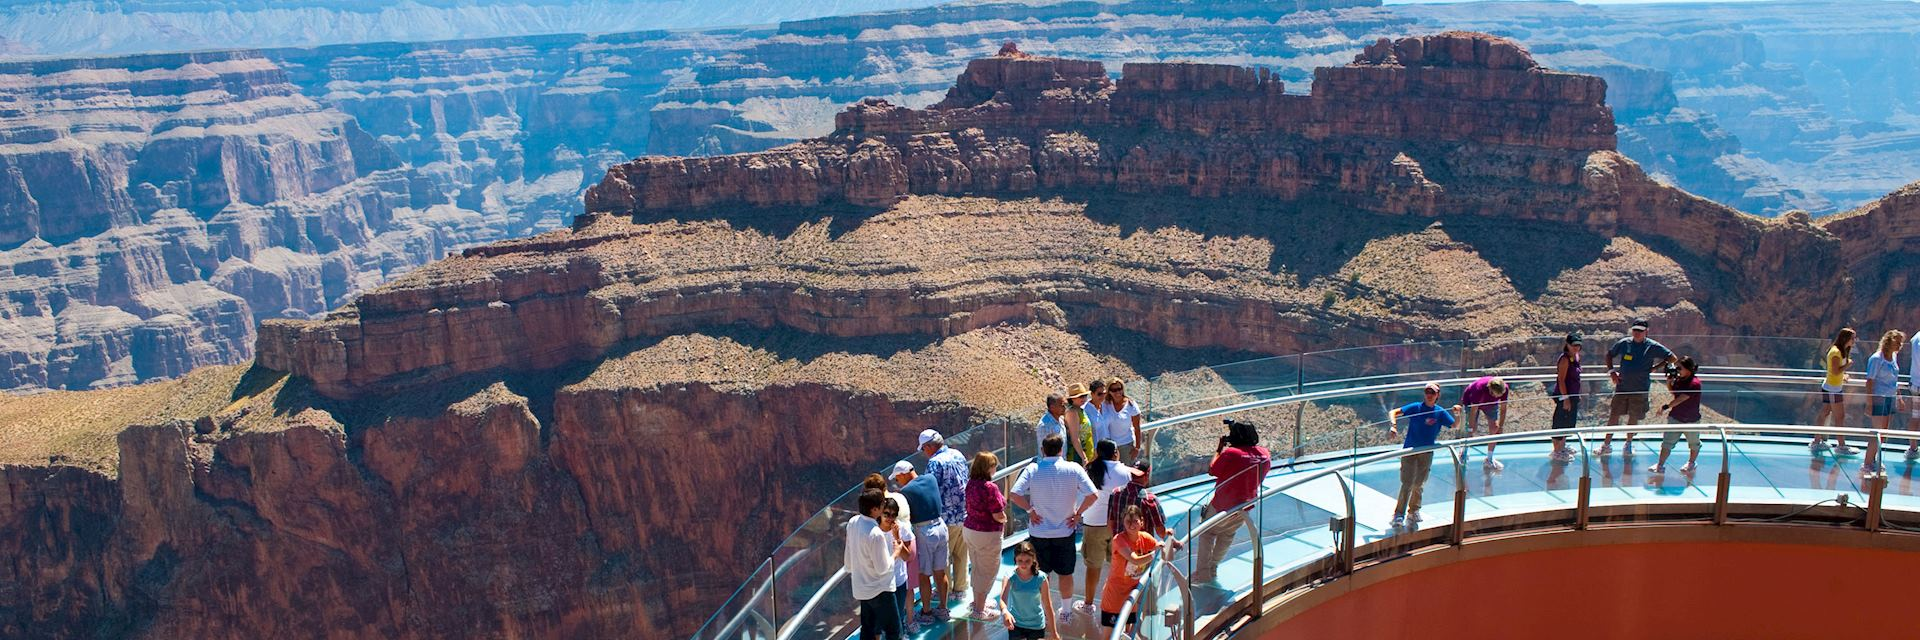 Skywalk at Grand Canyon West Rim